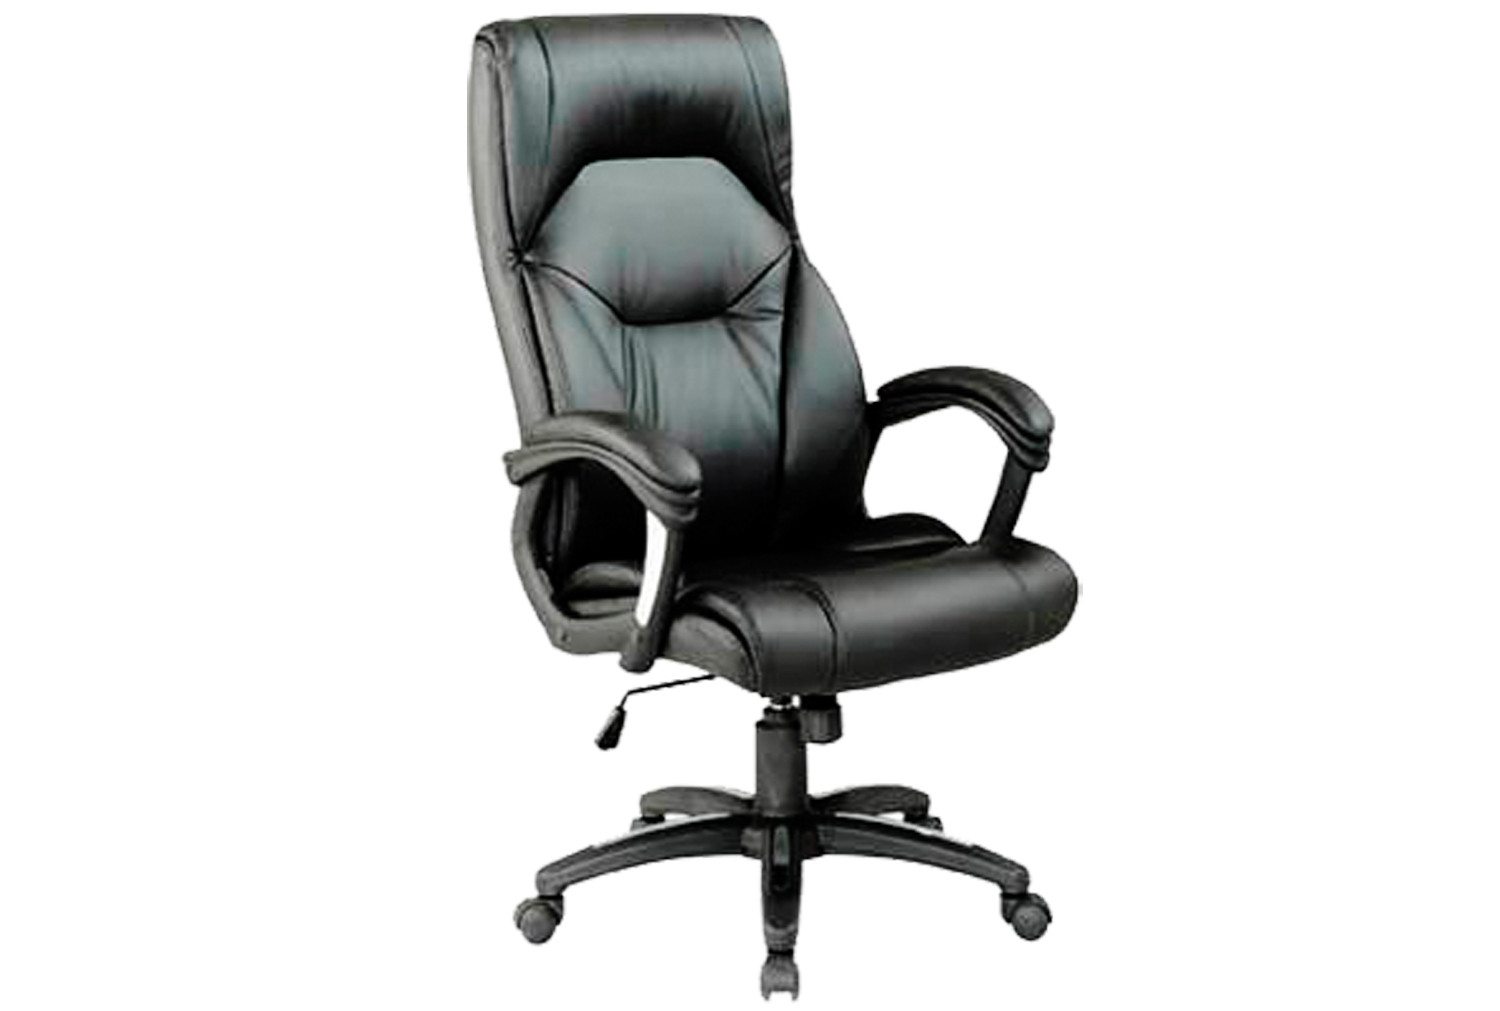 Next-Day Modello High Back Leather Faced Executive Chair